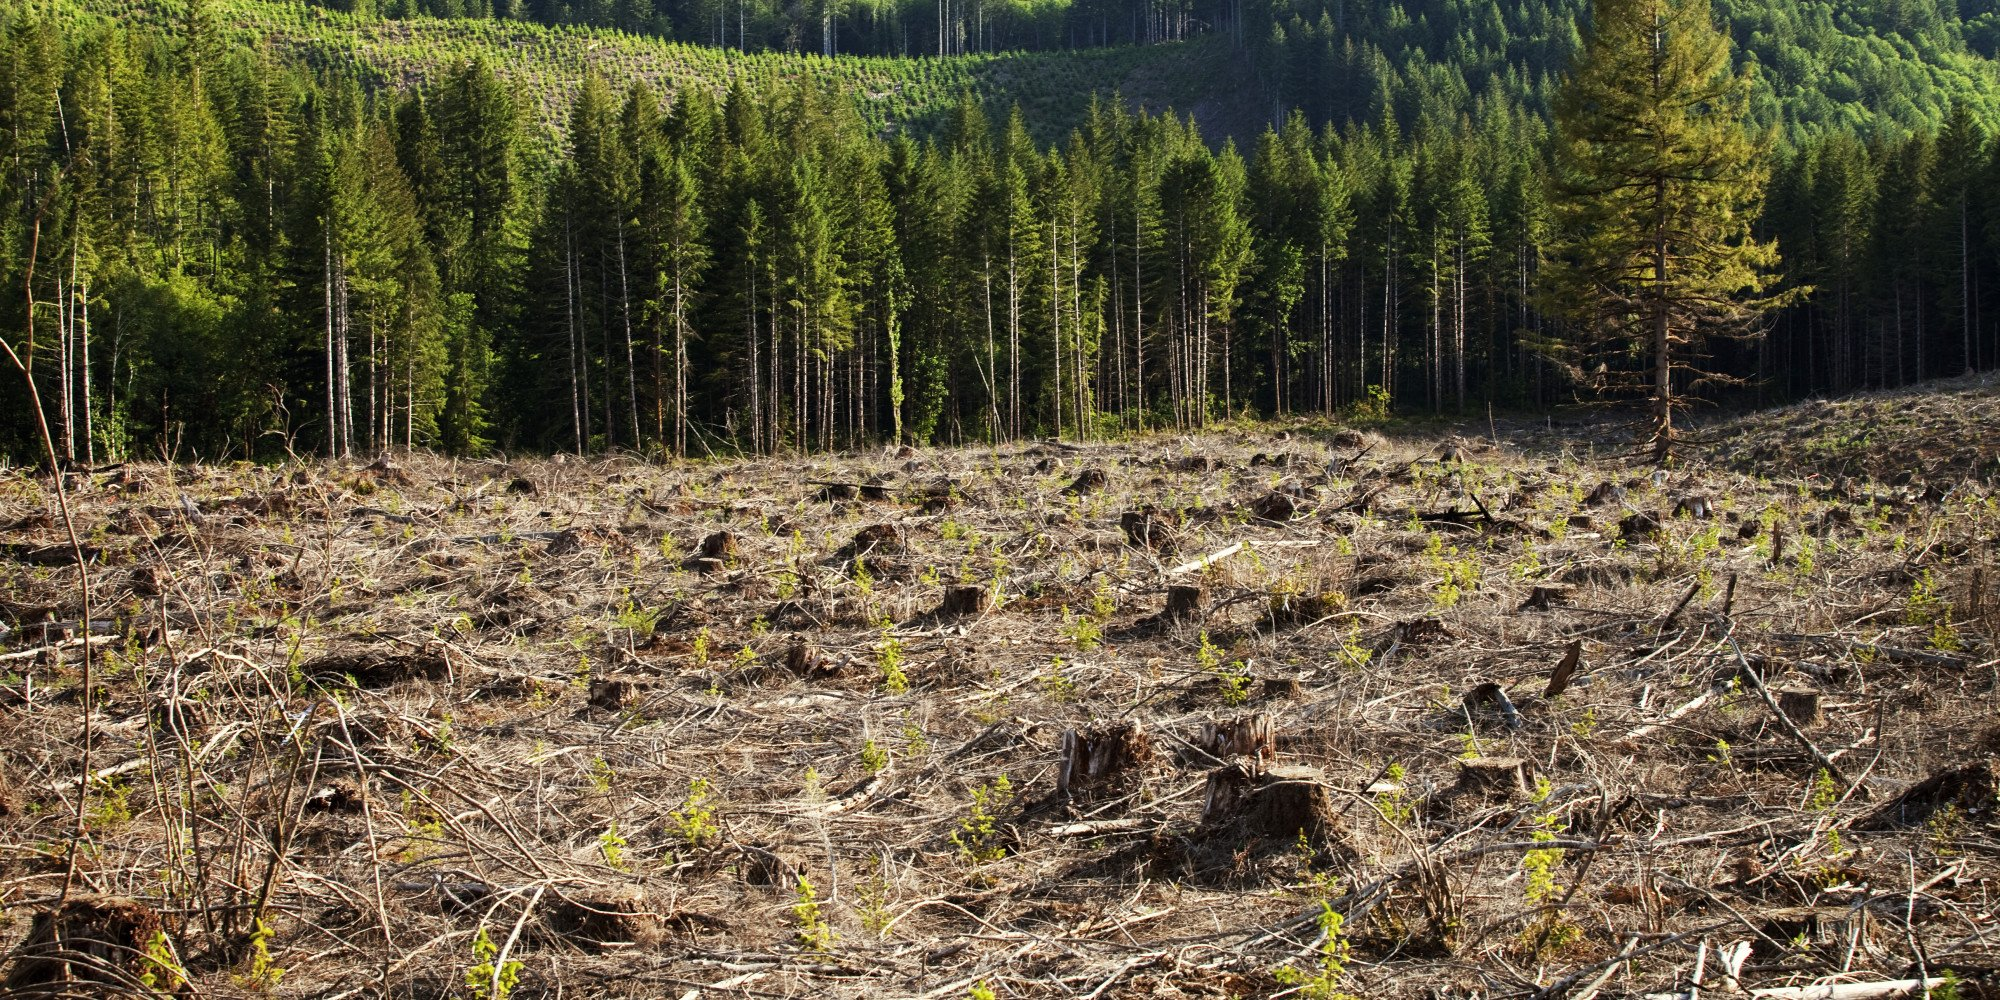 Reforestation of Field of Trees in Clearing